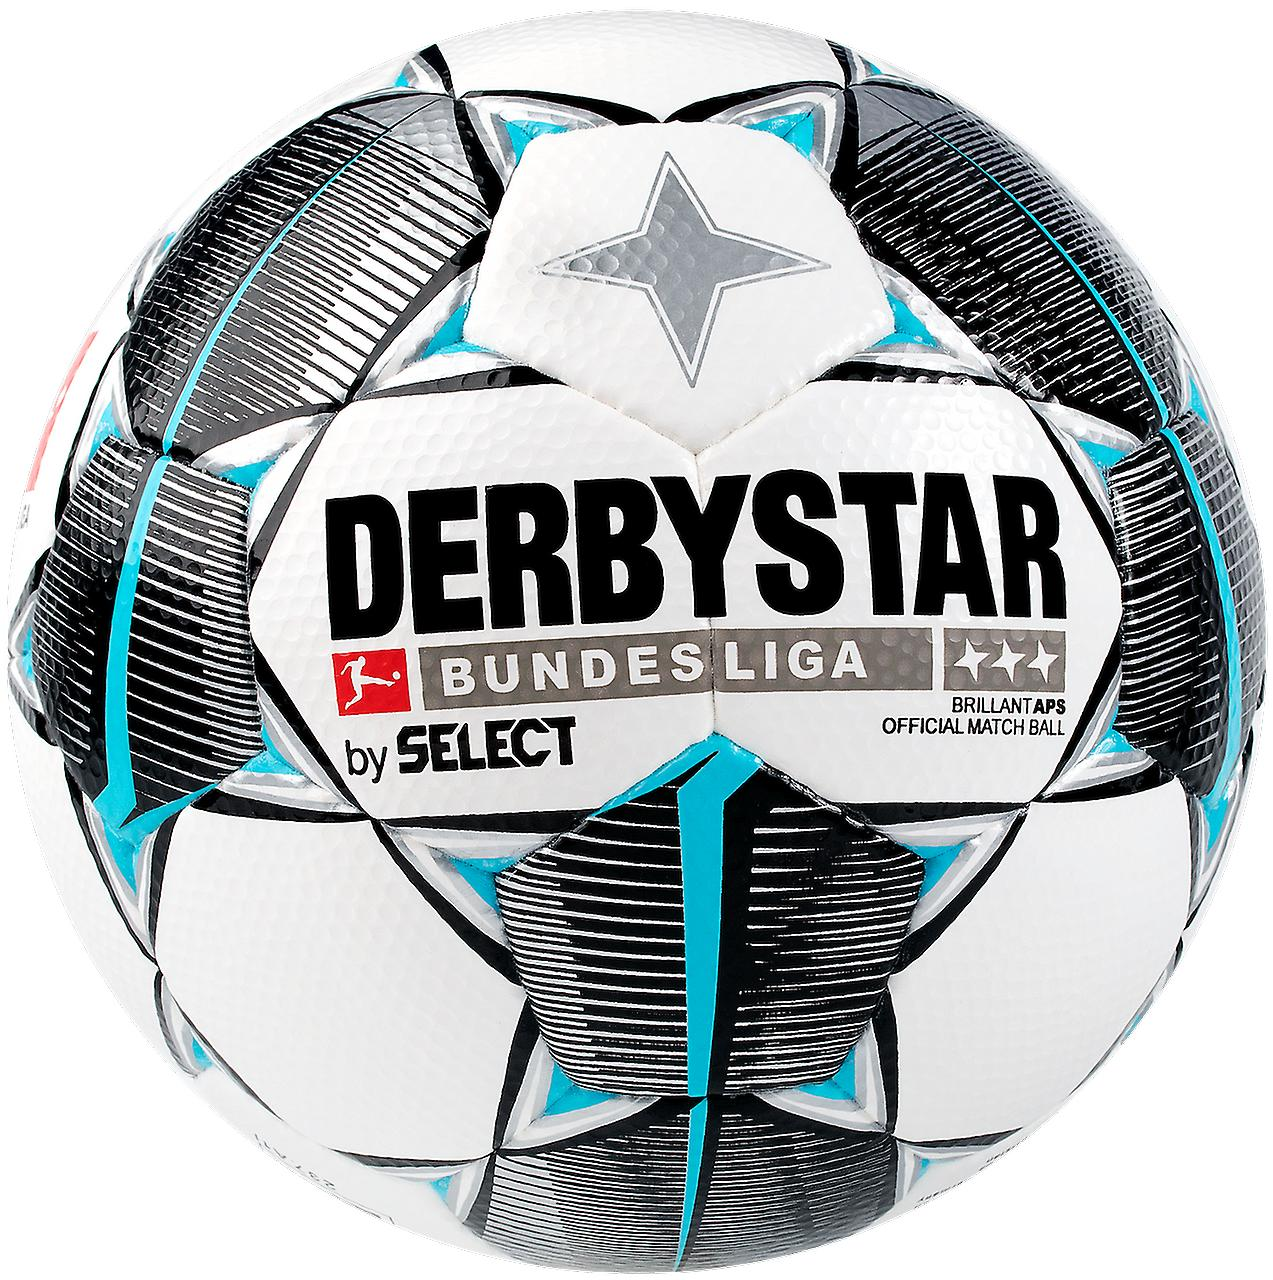 5 x DERBYSTAR Game Ball - BUNDESLIGA BRILLANT APS 19/20 incl. ball hose